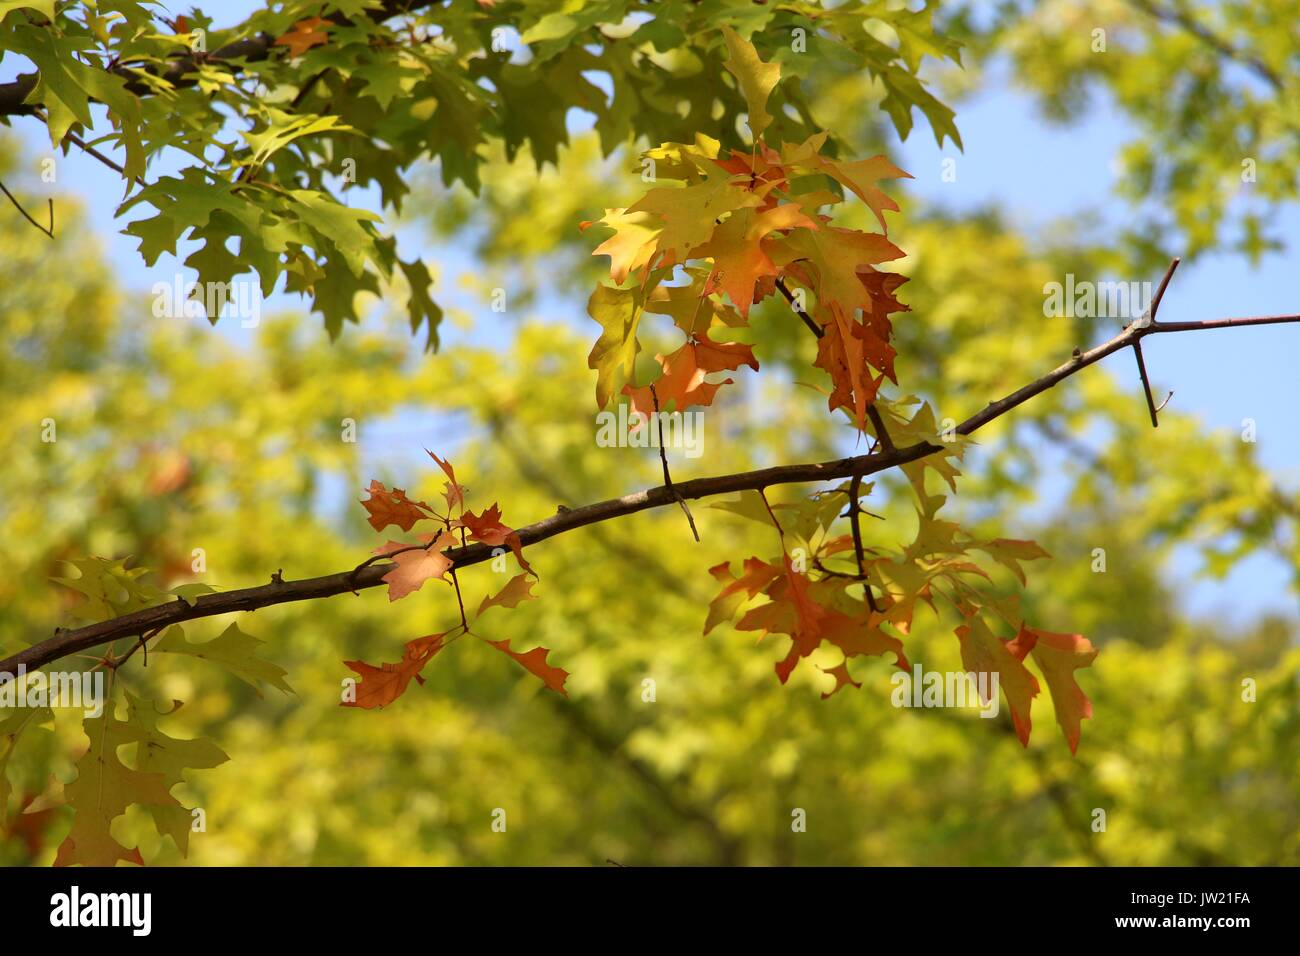 Foliage Change in Colour During Autumn or Fall Season - Stock Image